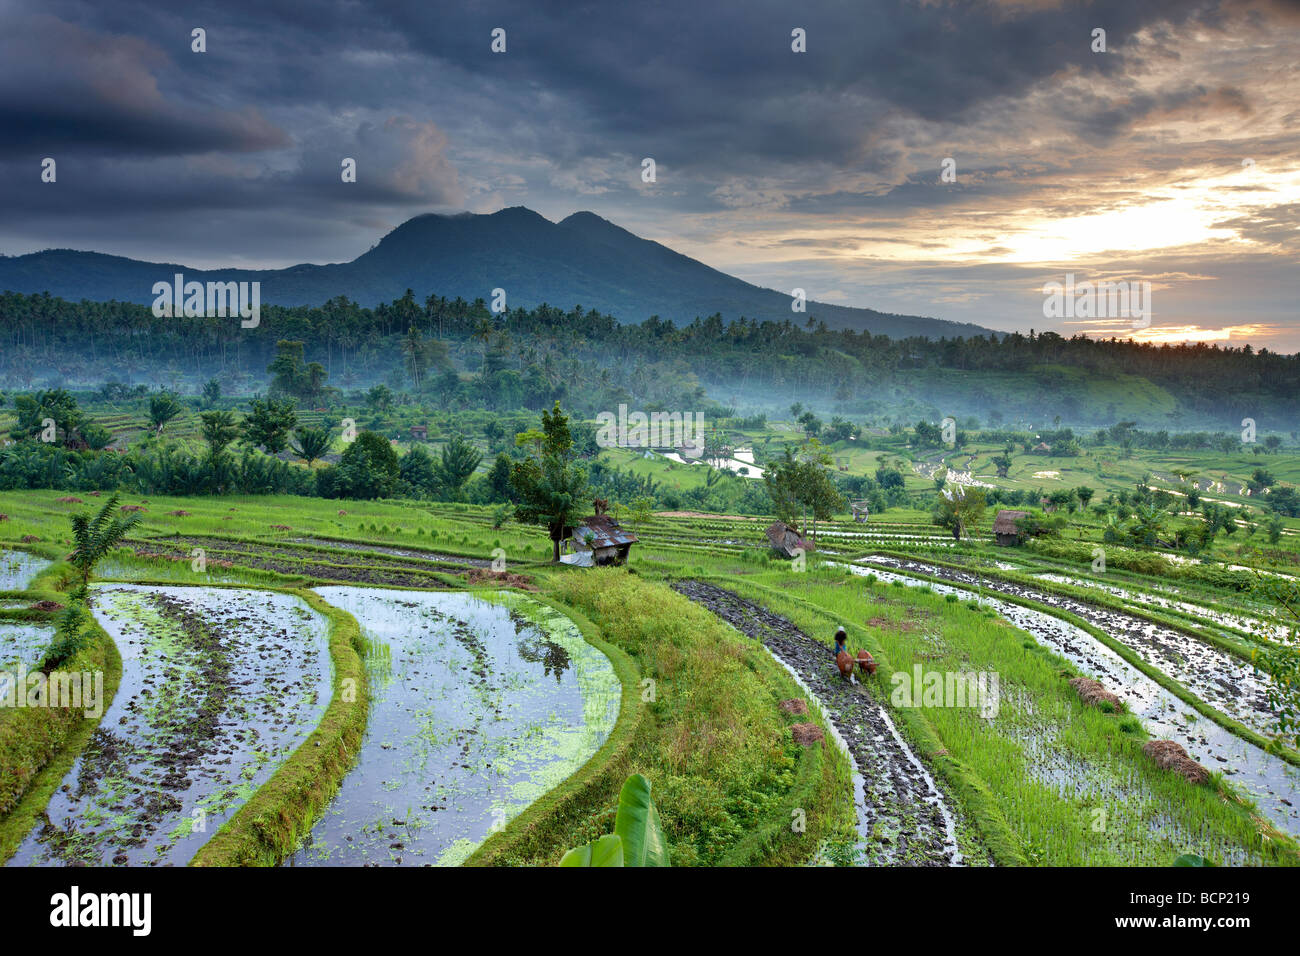 ox driven plough in the terraced rice fields nr Tirtagangga at dawn with the volcanic peak of Gunung Lempuyang, Stock Photo